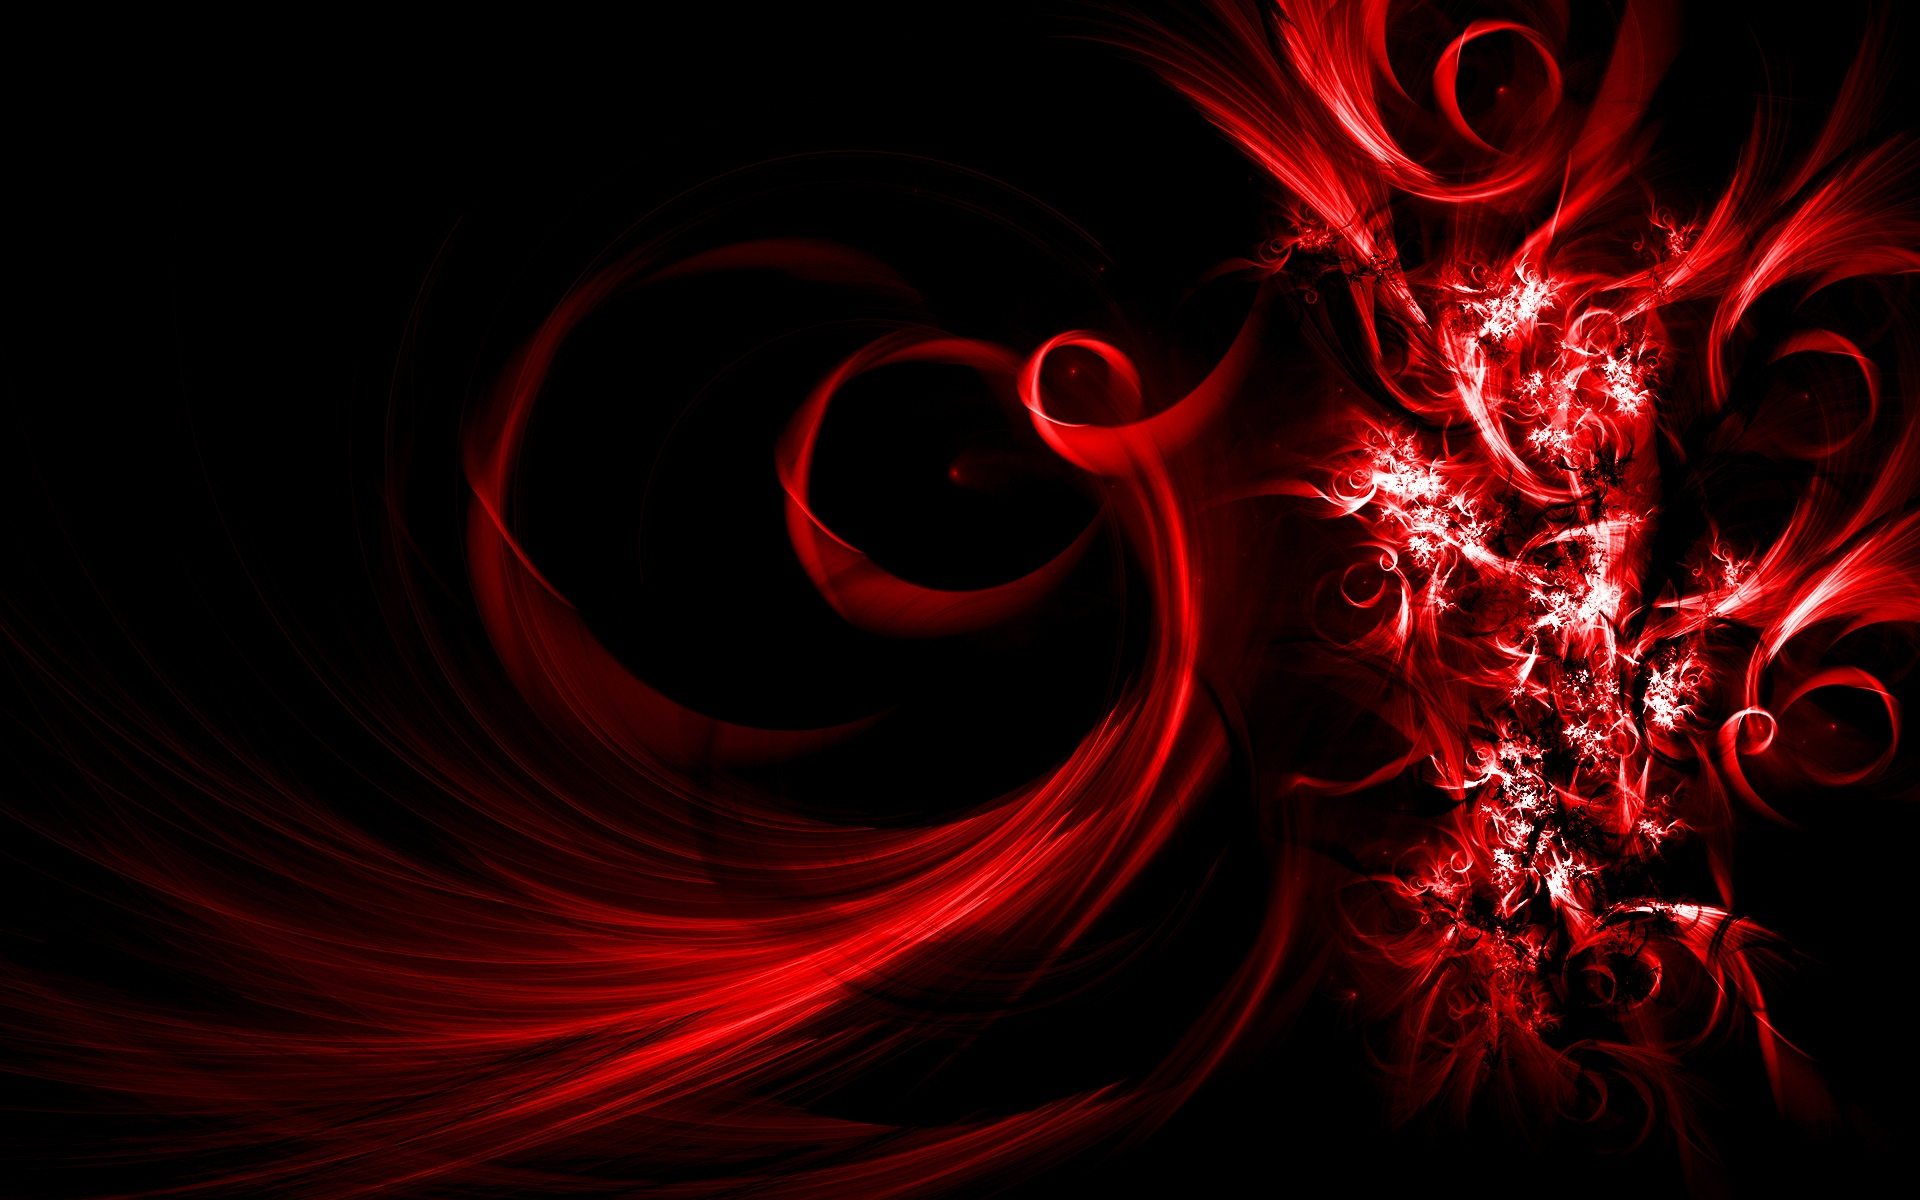 Free download Digital Red Abstract Art ...